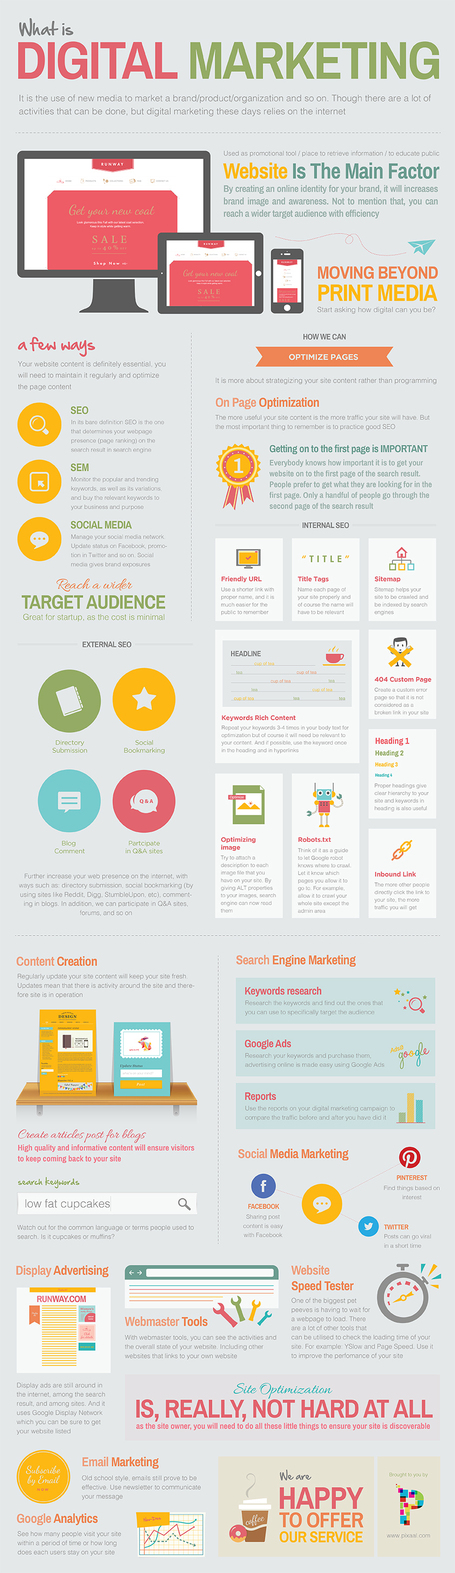 The Ultimate Guide To Understanding Digital Marketing [Infographic] | Tocquigny's Digital Marketing Daily | Scoop.it